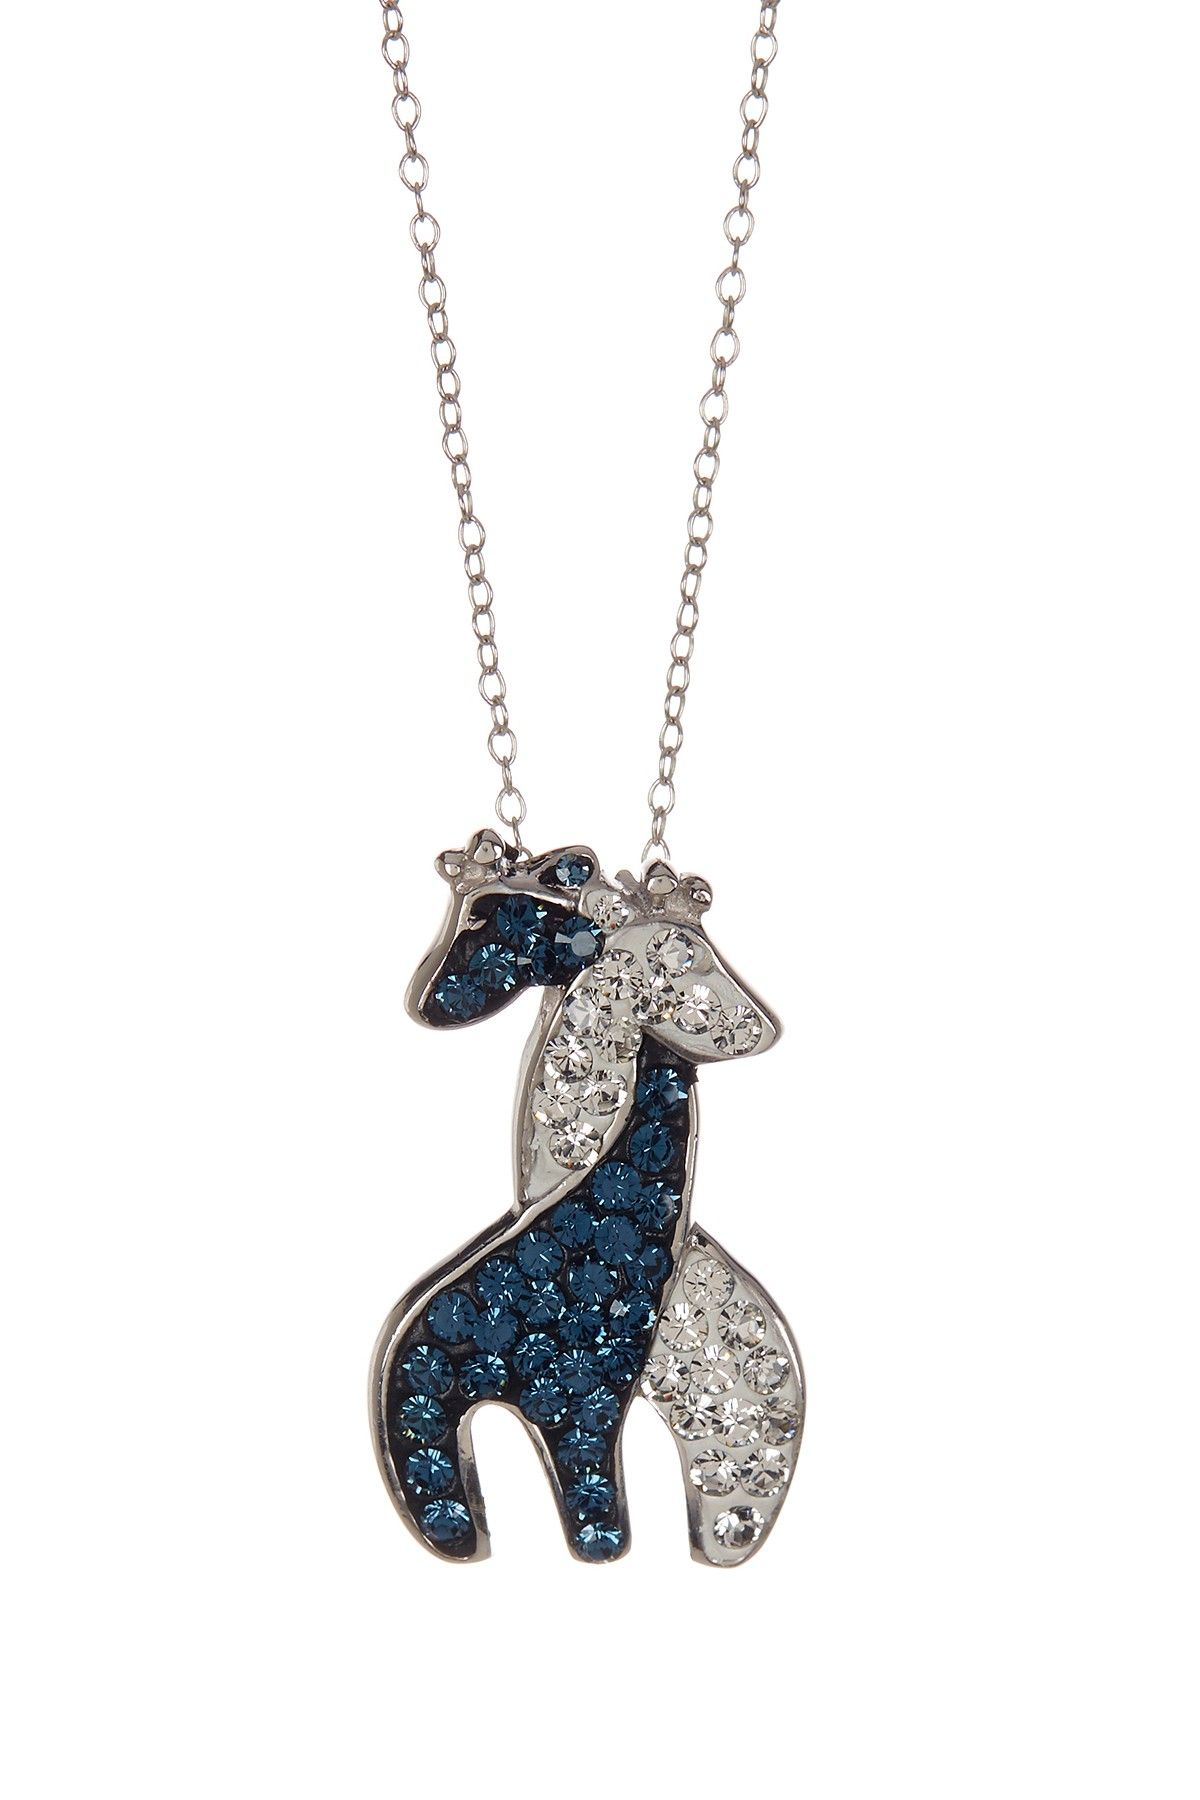 sterling from stand giraffe necklace silver shown crowd chain pendant the charm out model on